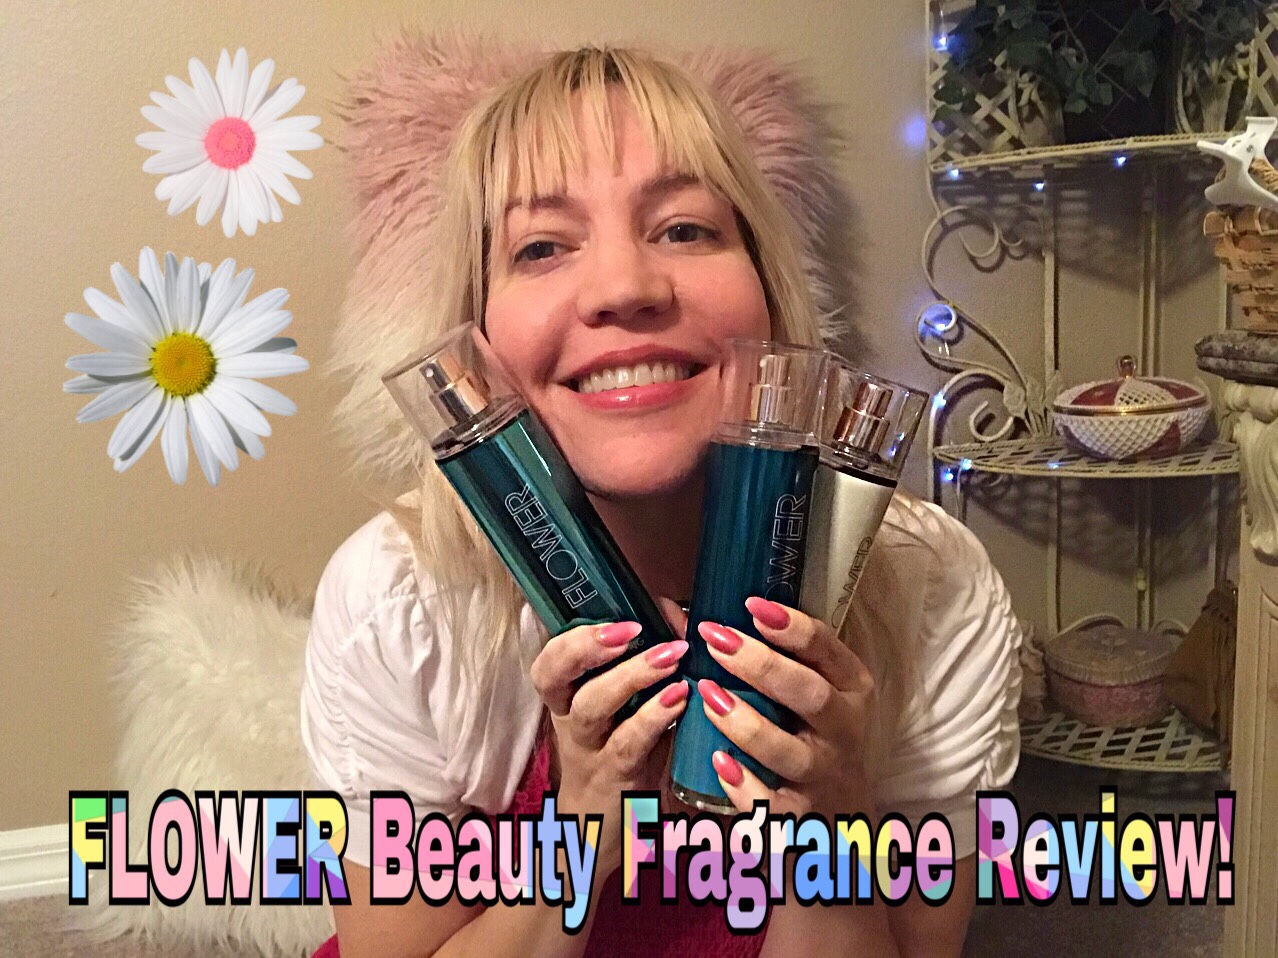 Fragrance Friday Reviewing Drew Barrymores Flower Beauty Scents